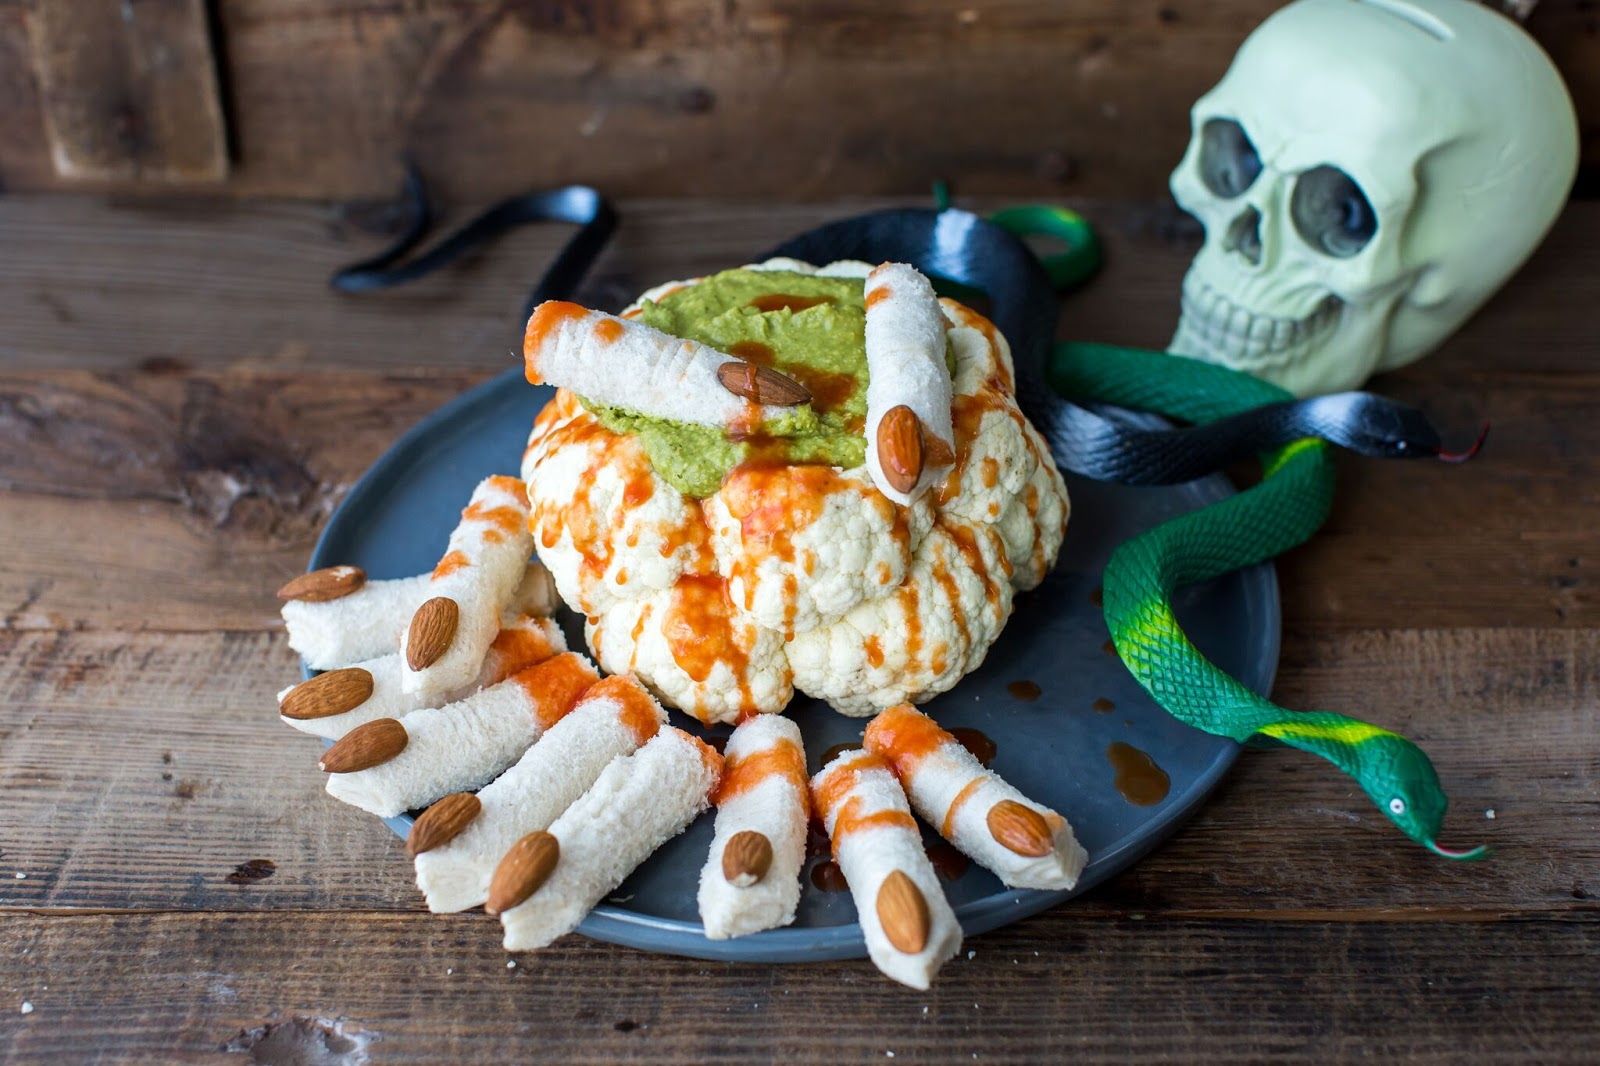 Roasted Cauliflower Brain With Green Slime Hummus And Dead Man's Finger Sandwiches